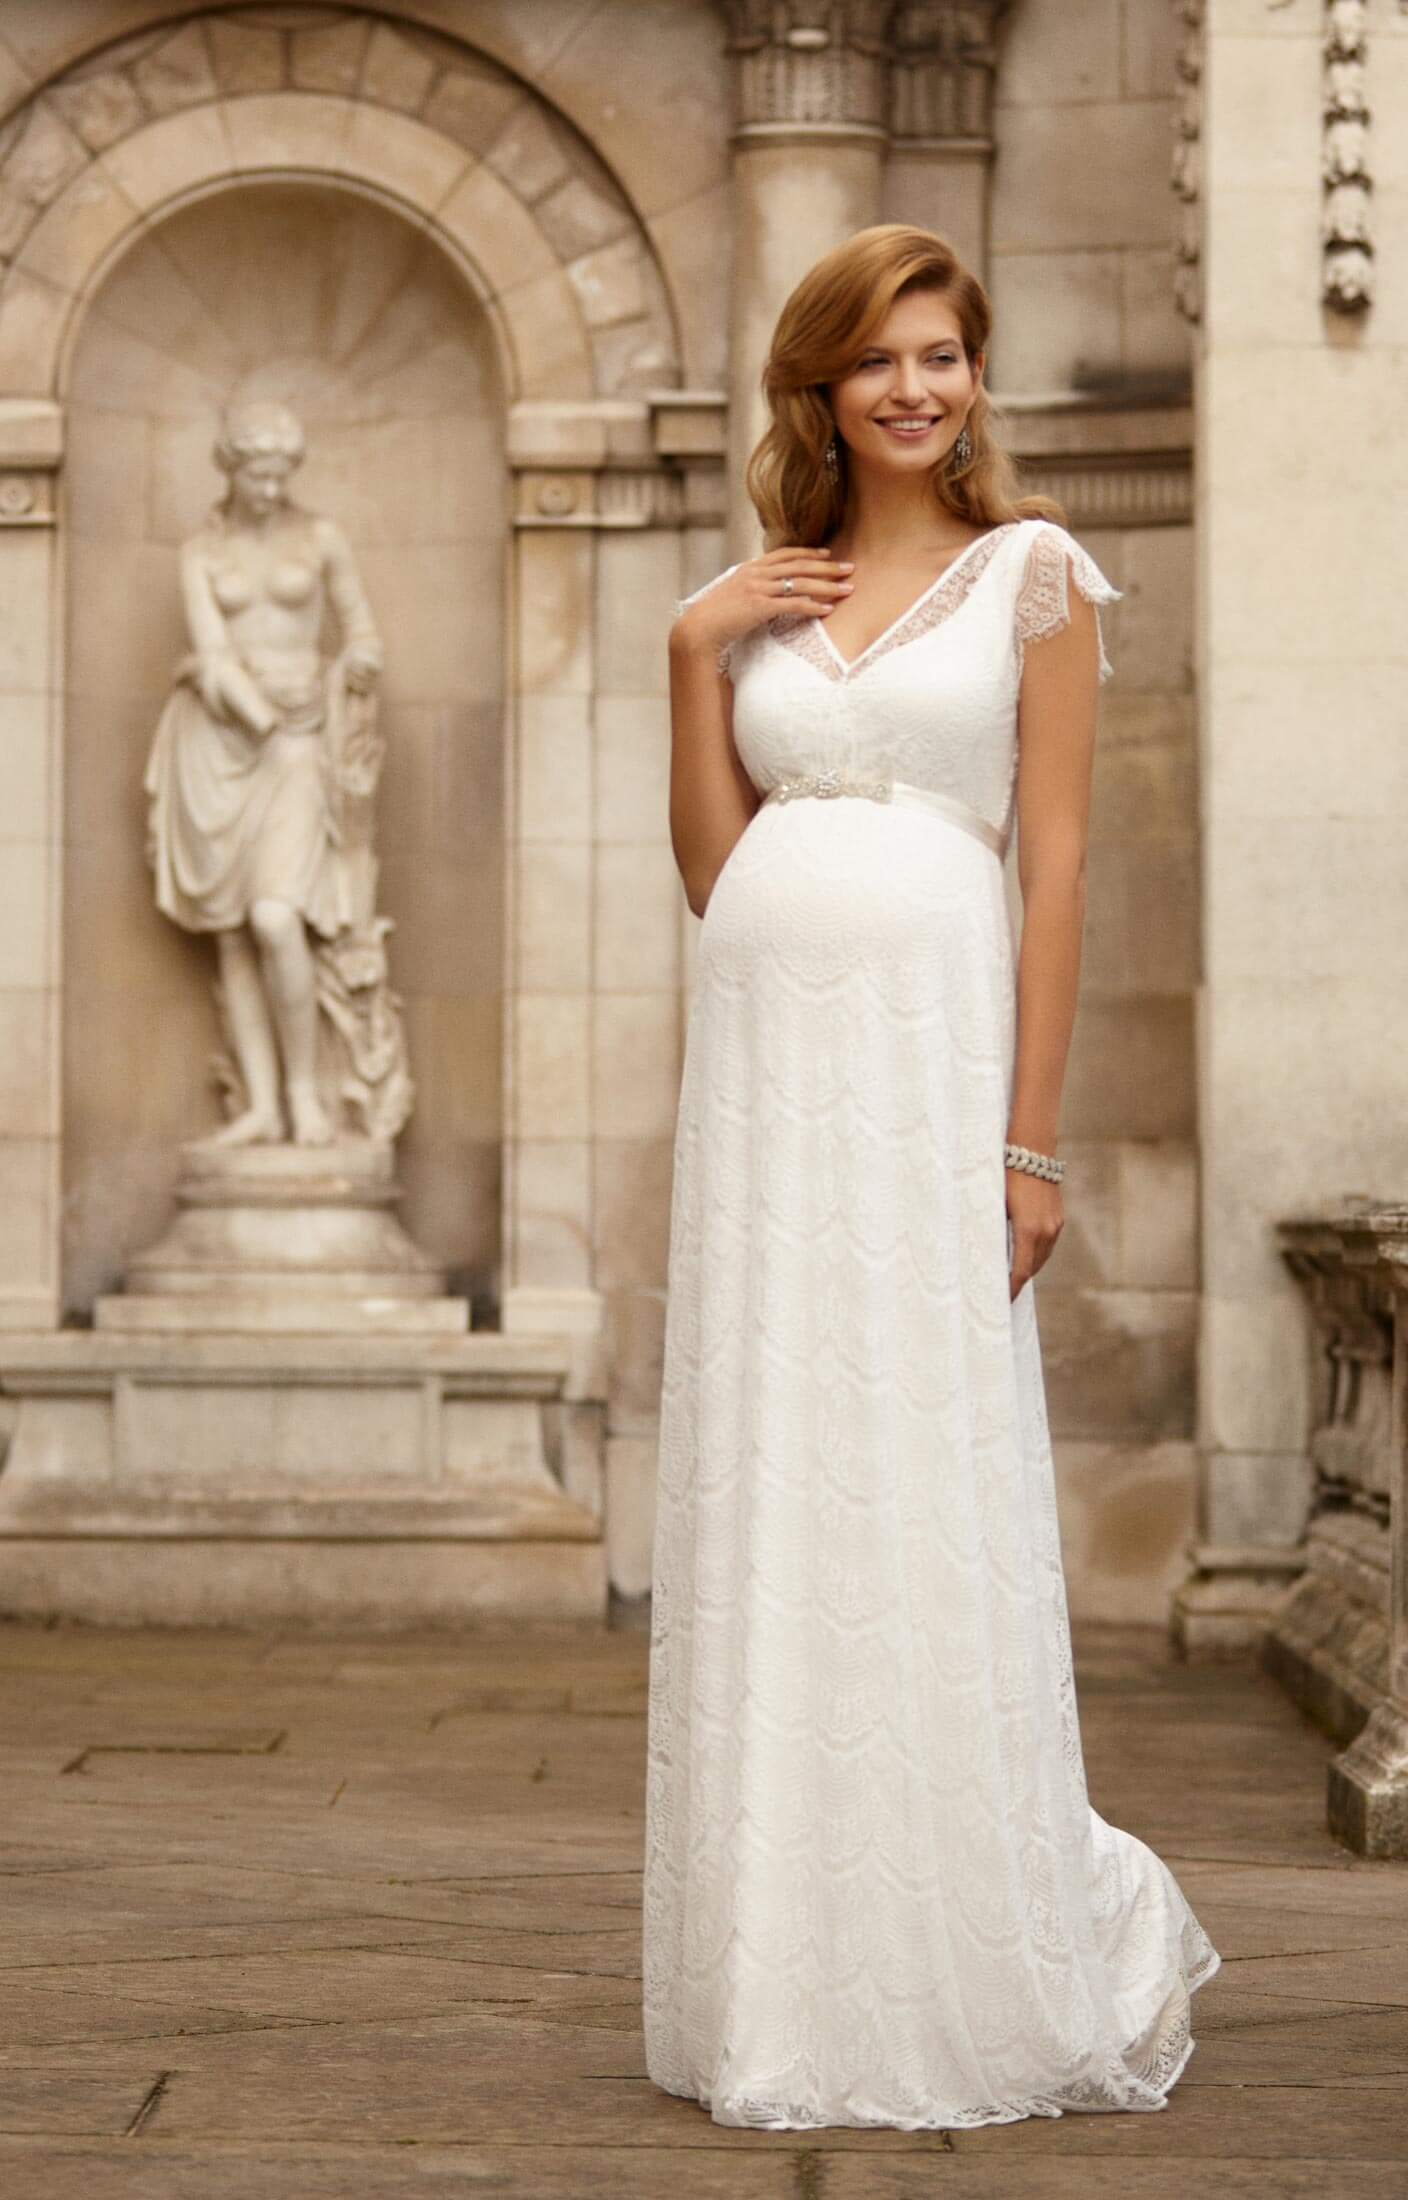 Maternity Wedding Dresses Maternity Wedding Gowns and Maternity ...